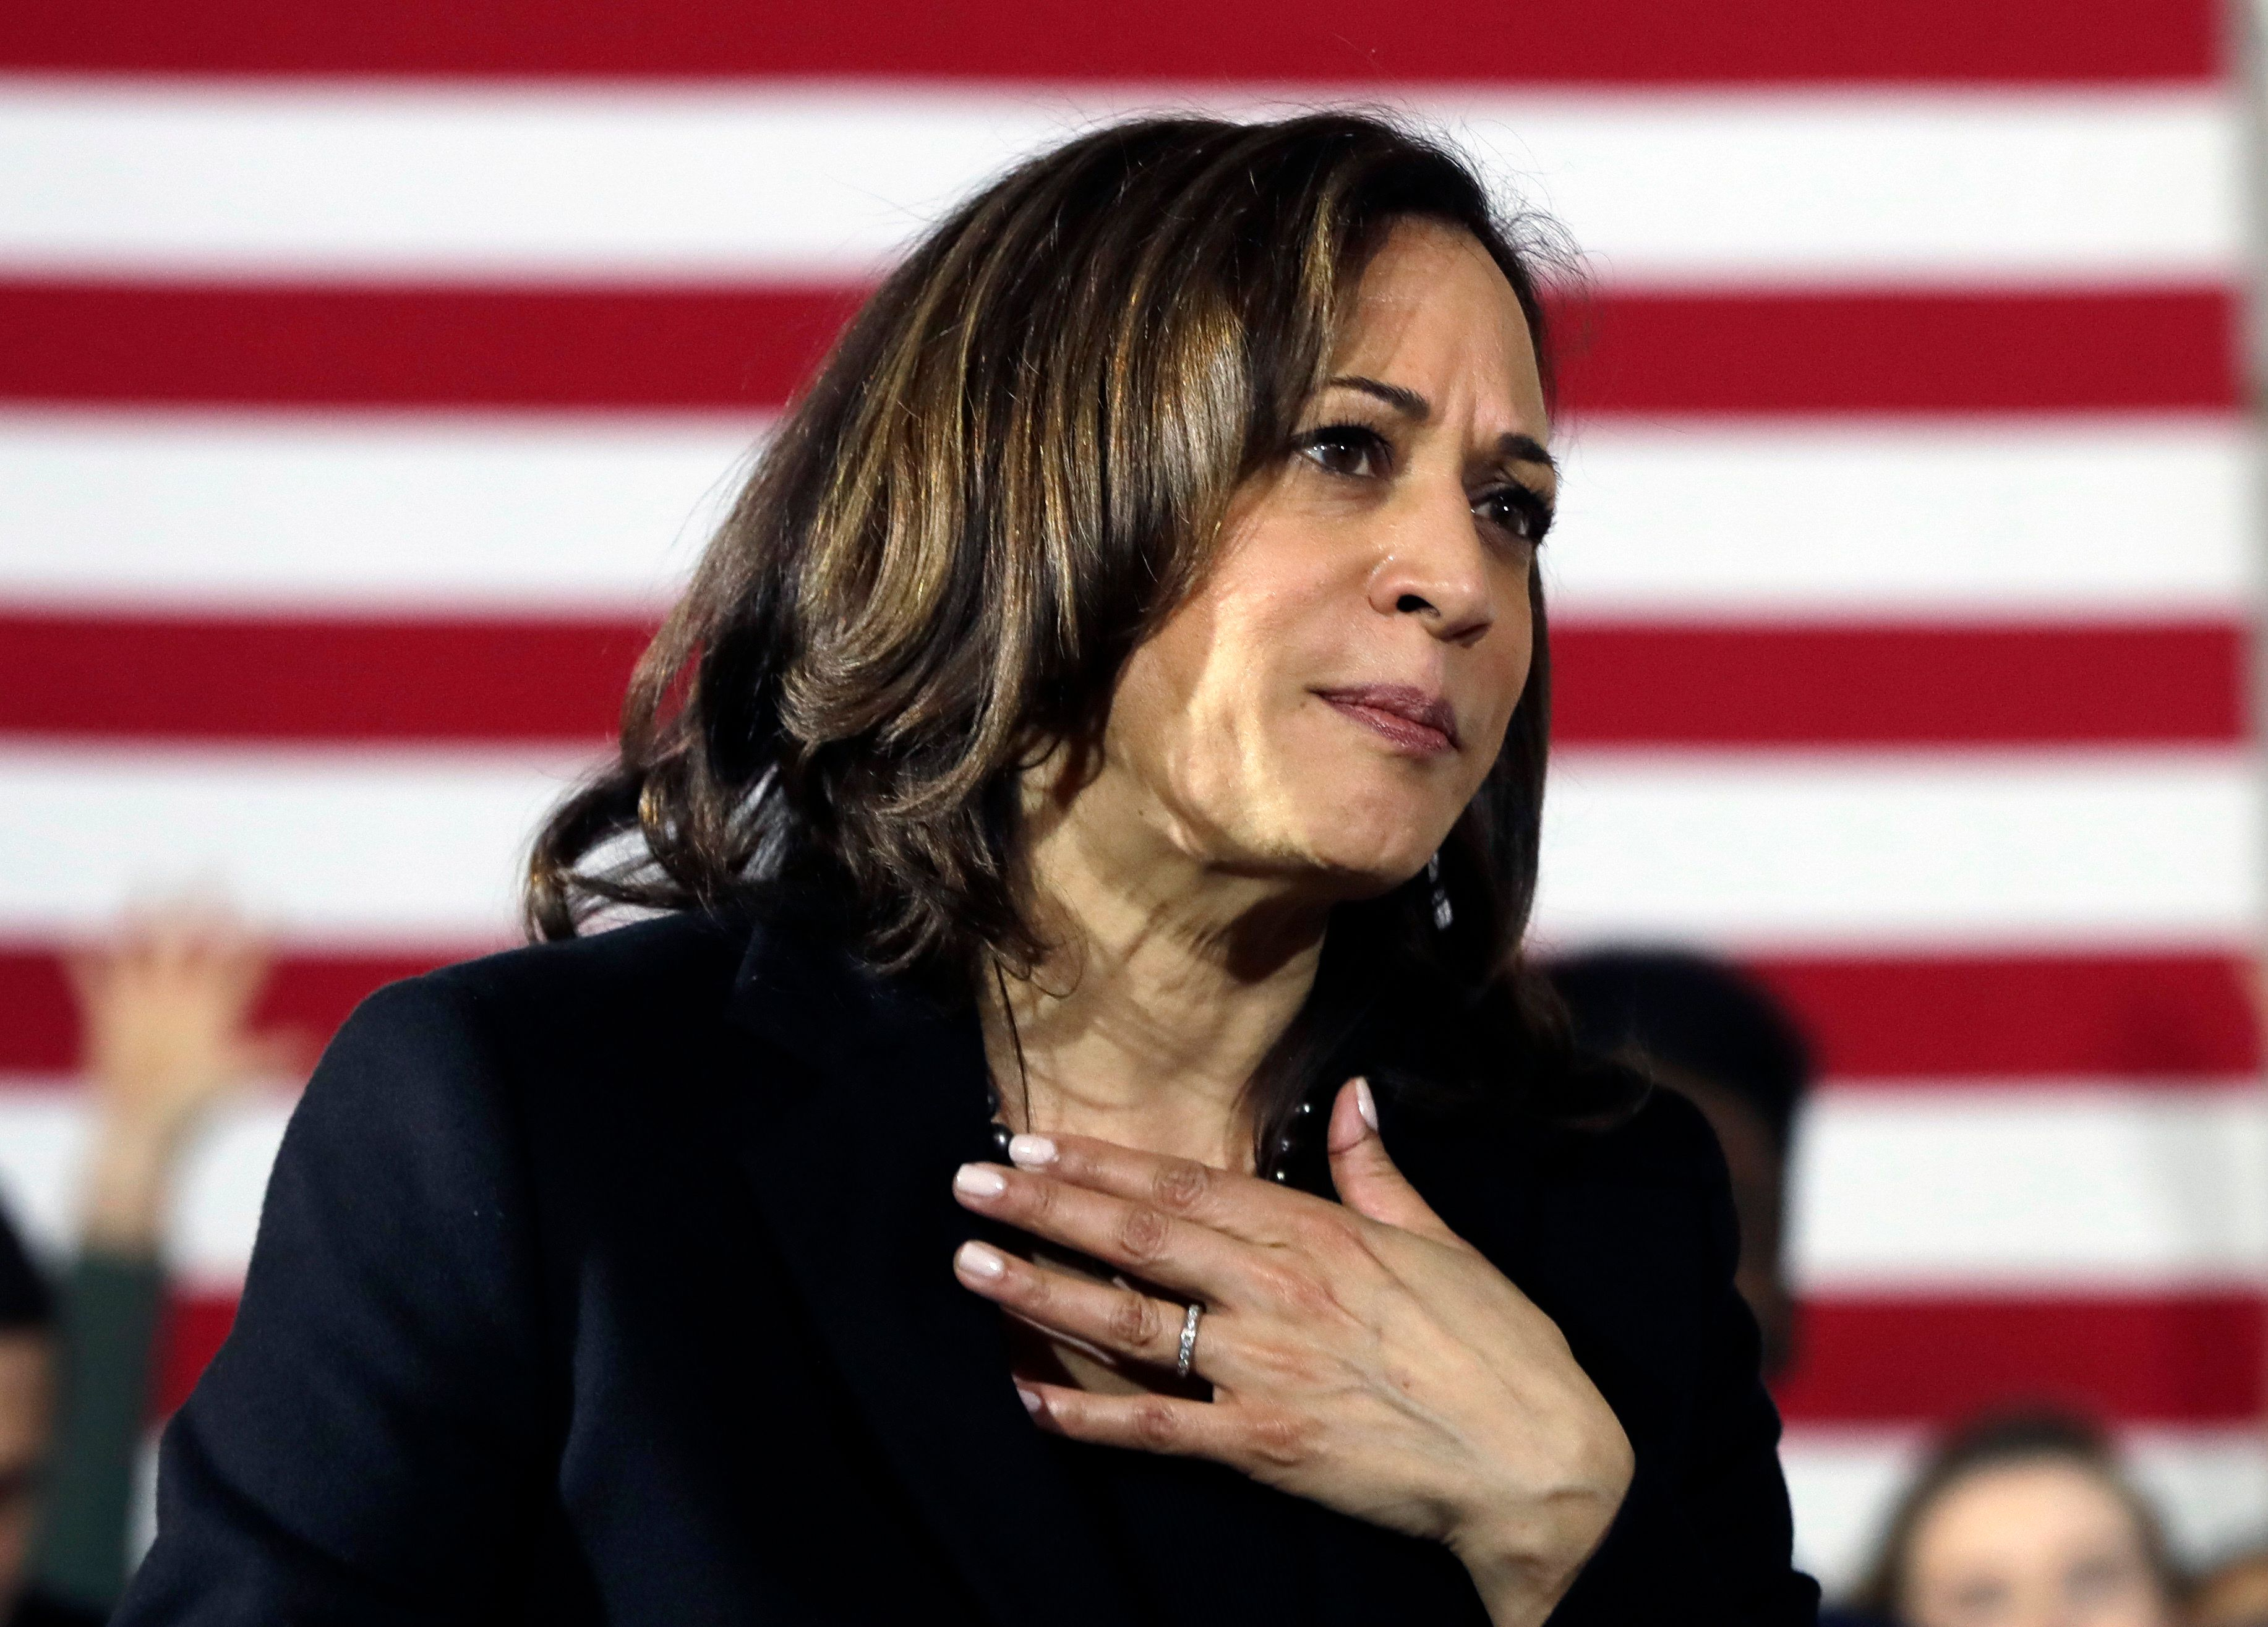 Democratic presidential candidate Sen. Kamala Harris, D-Calif., listens to a question at a campaign event in Portsmouth, N.H., Monday, Feb. 18, 2019. (AP Photo/Elise Amendola)